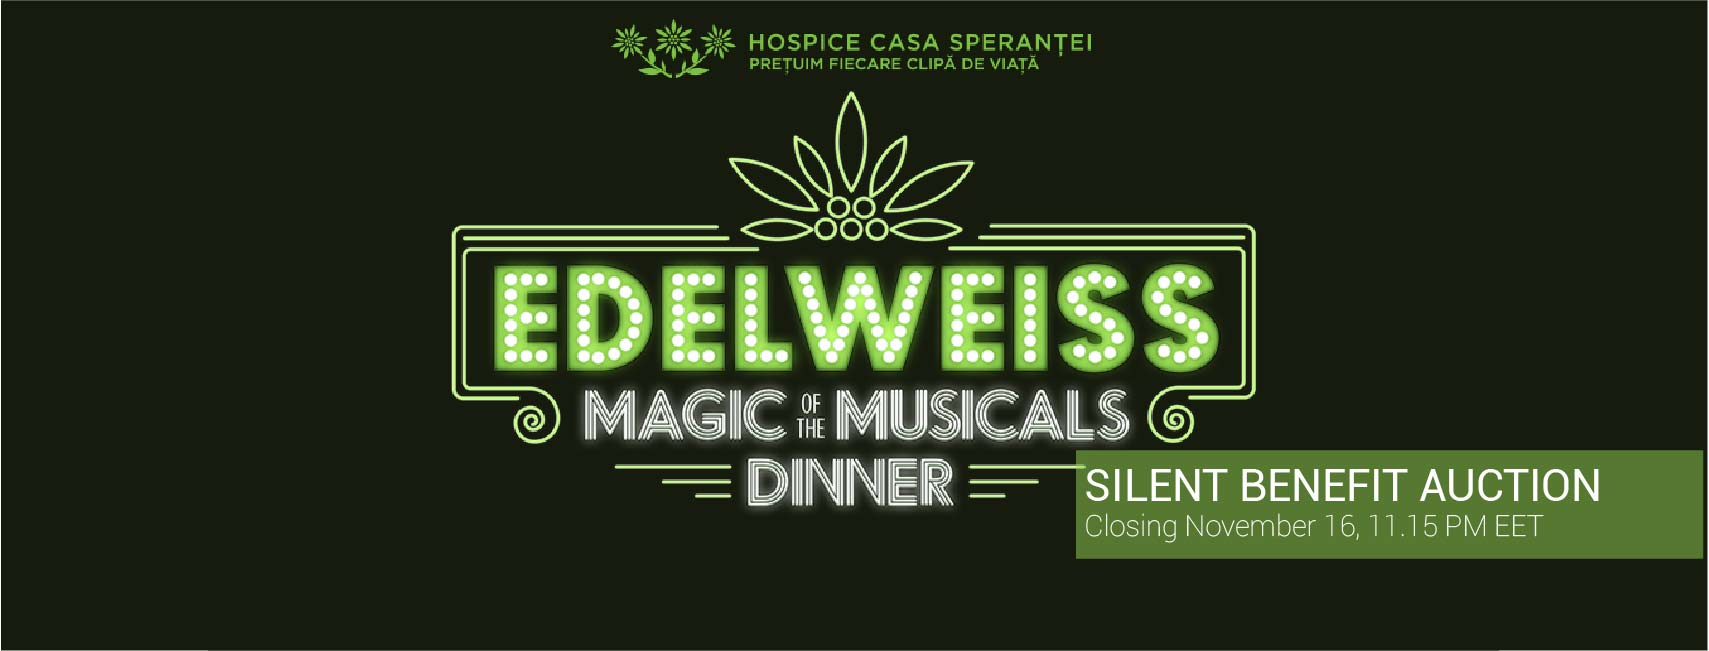 The Edelweiss Magic of the Musicals Dinner Benefit Auction